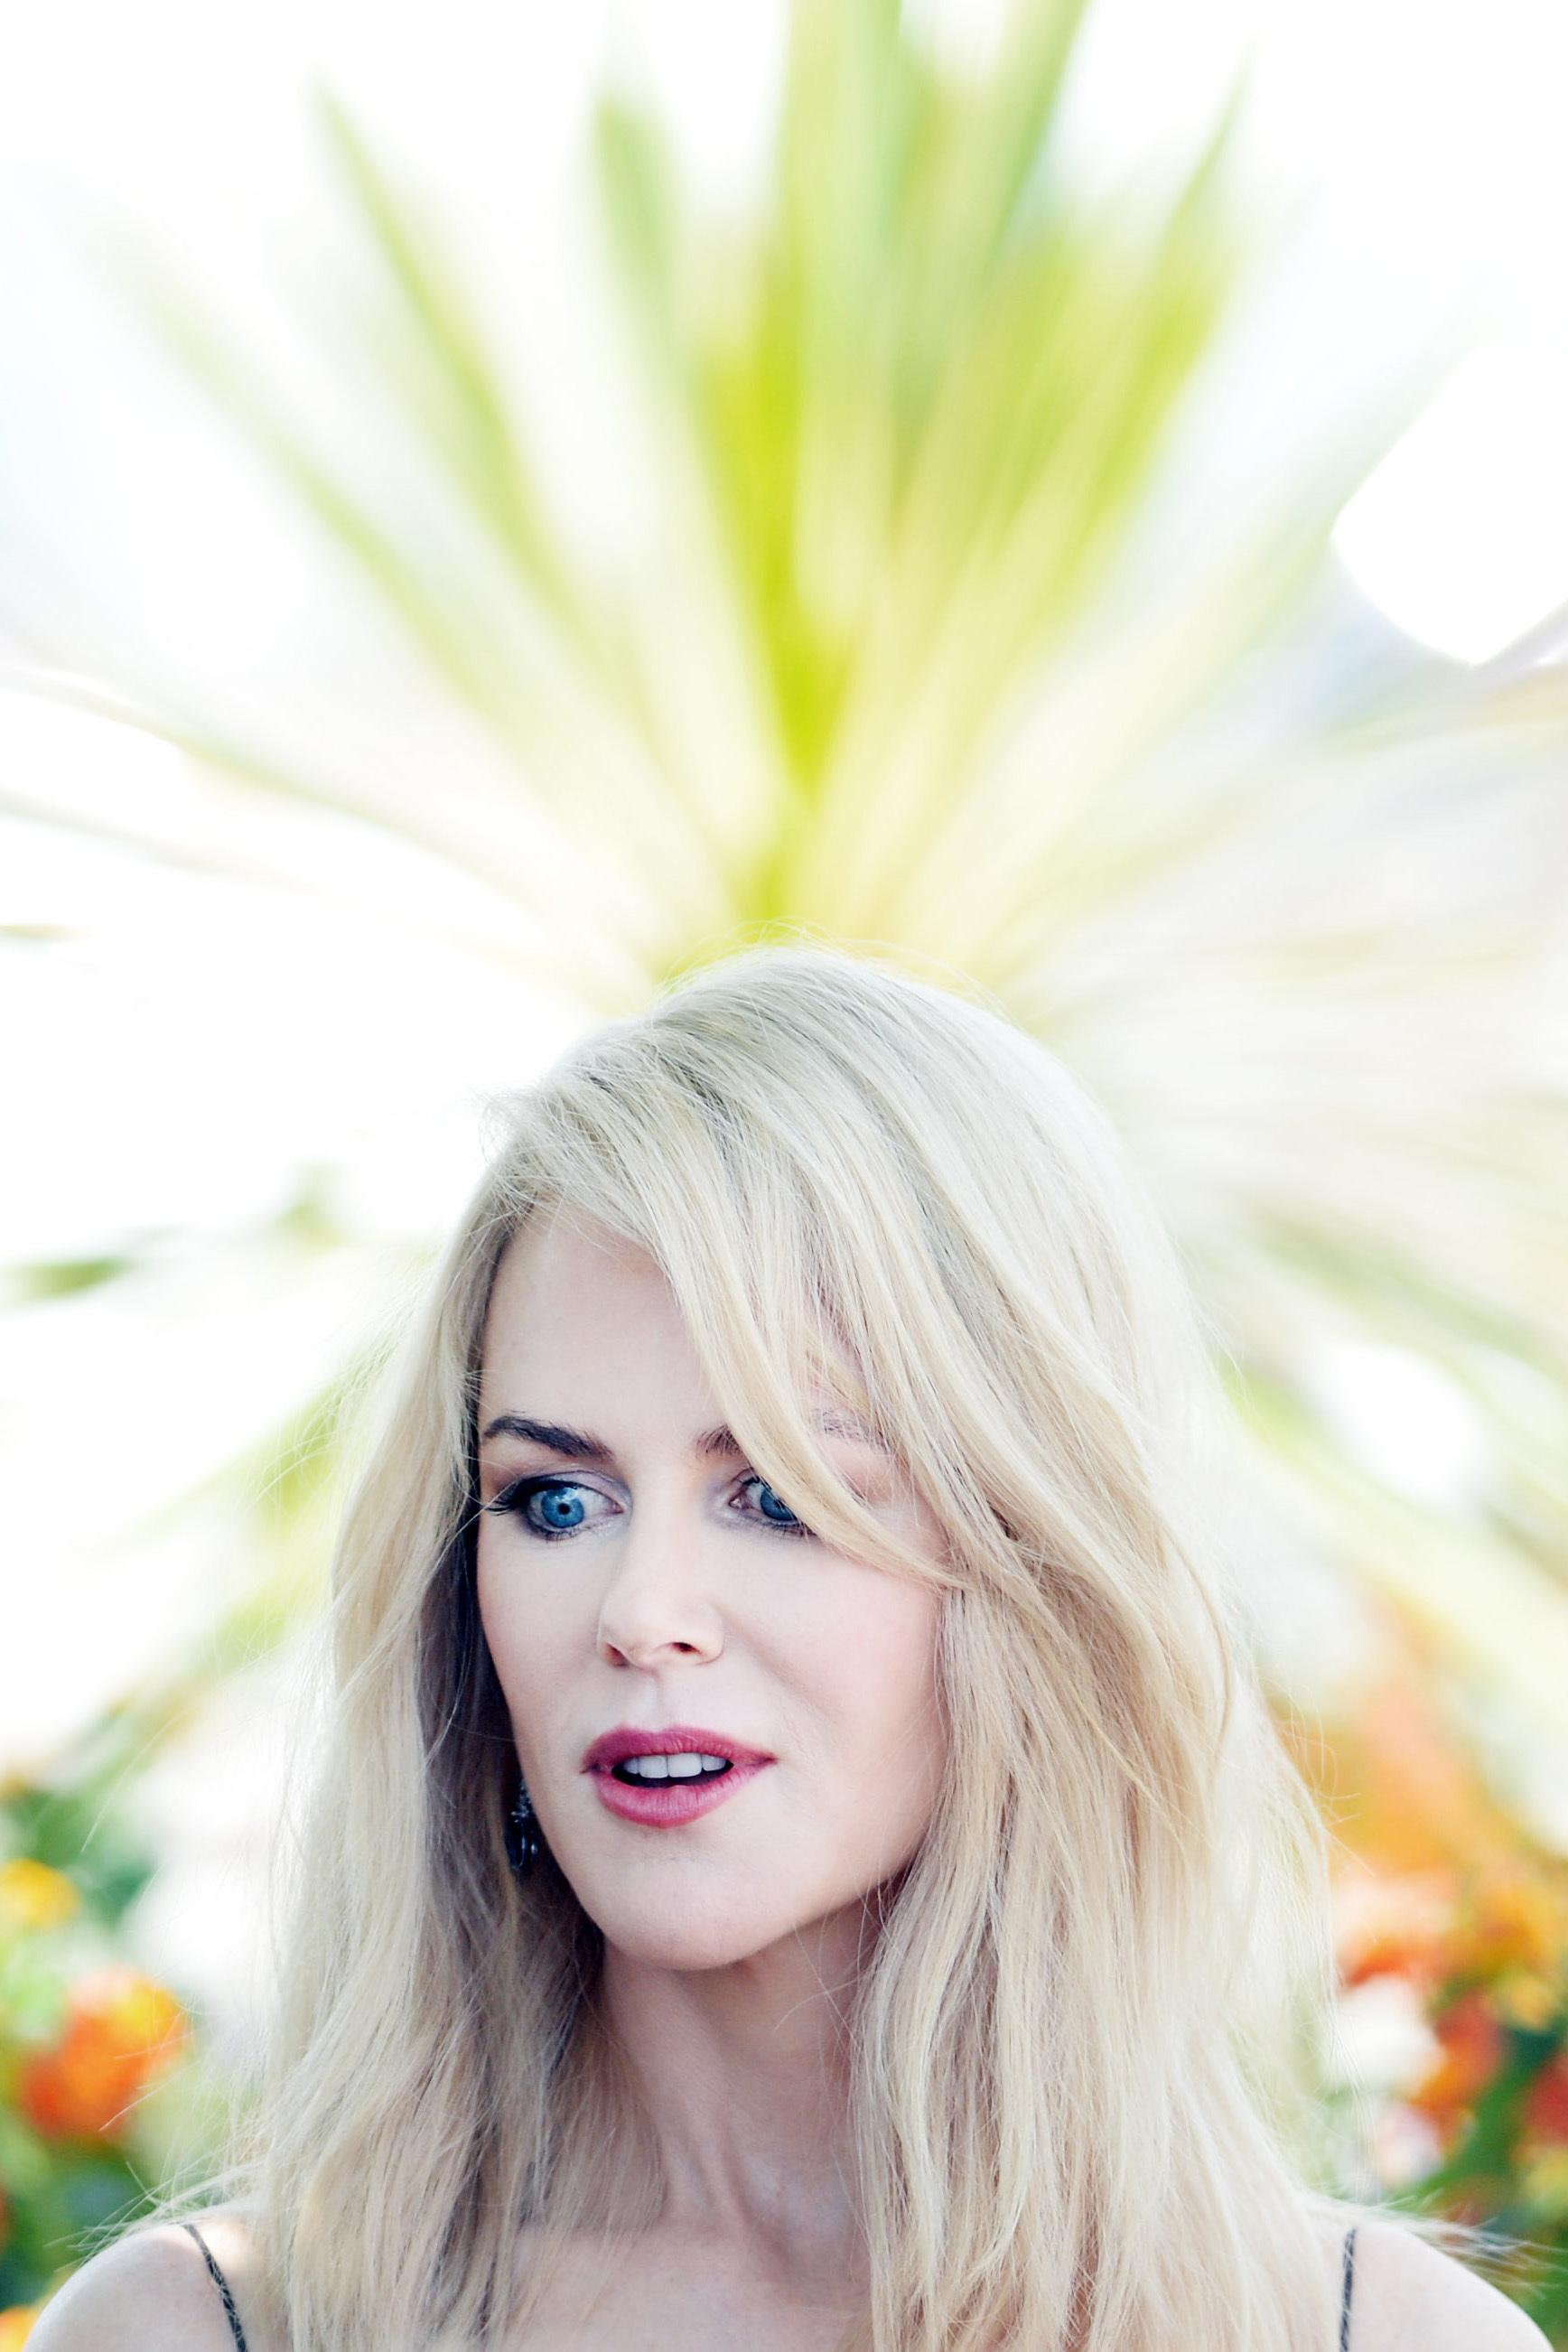 Nicole Kidman attending the photocall for 'The Killing of a Sacred Deer' during the 70th annual Cannes Film Festival at Palais des Festivals in Cannes, France.Featuring: Nicole KidmanWhere: Cannes, FranceWhen: 22 May 2017Credit: WENN.com